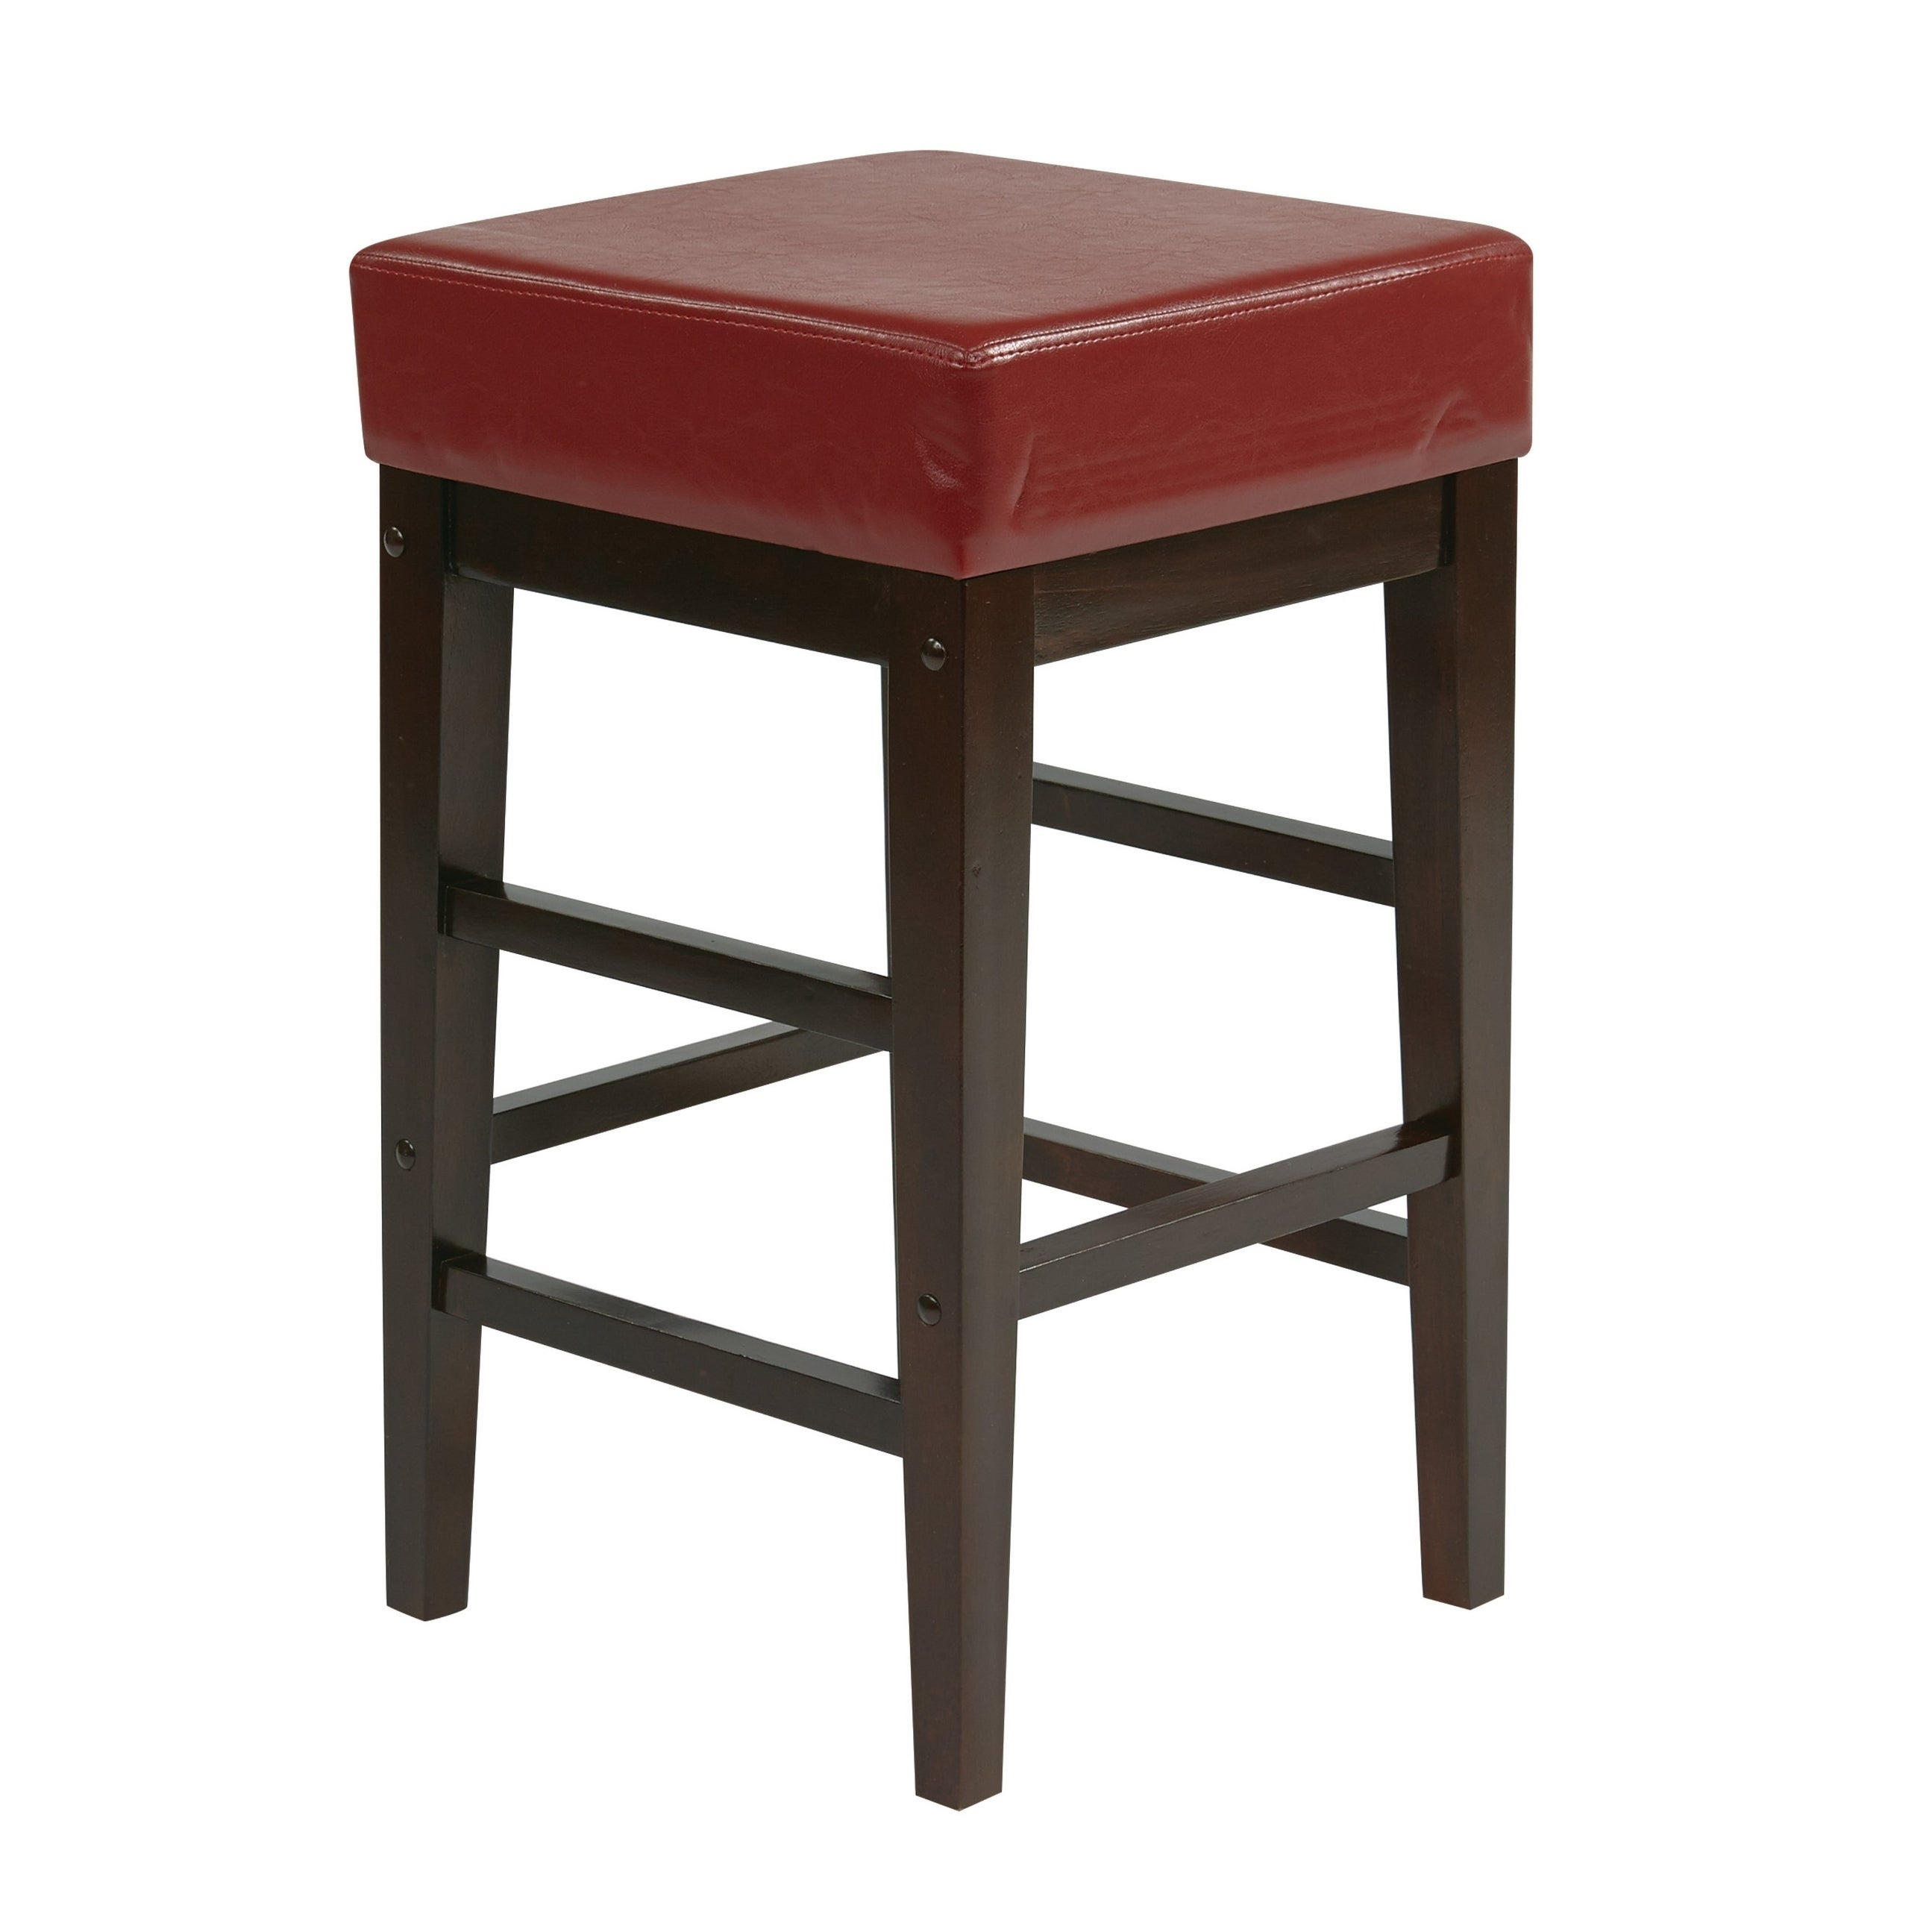 Astonishing Faux Leather Seat 25H Square Bar Wood Counter Stool Backless Uwap Interior Chair Design Uwaporg